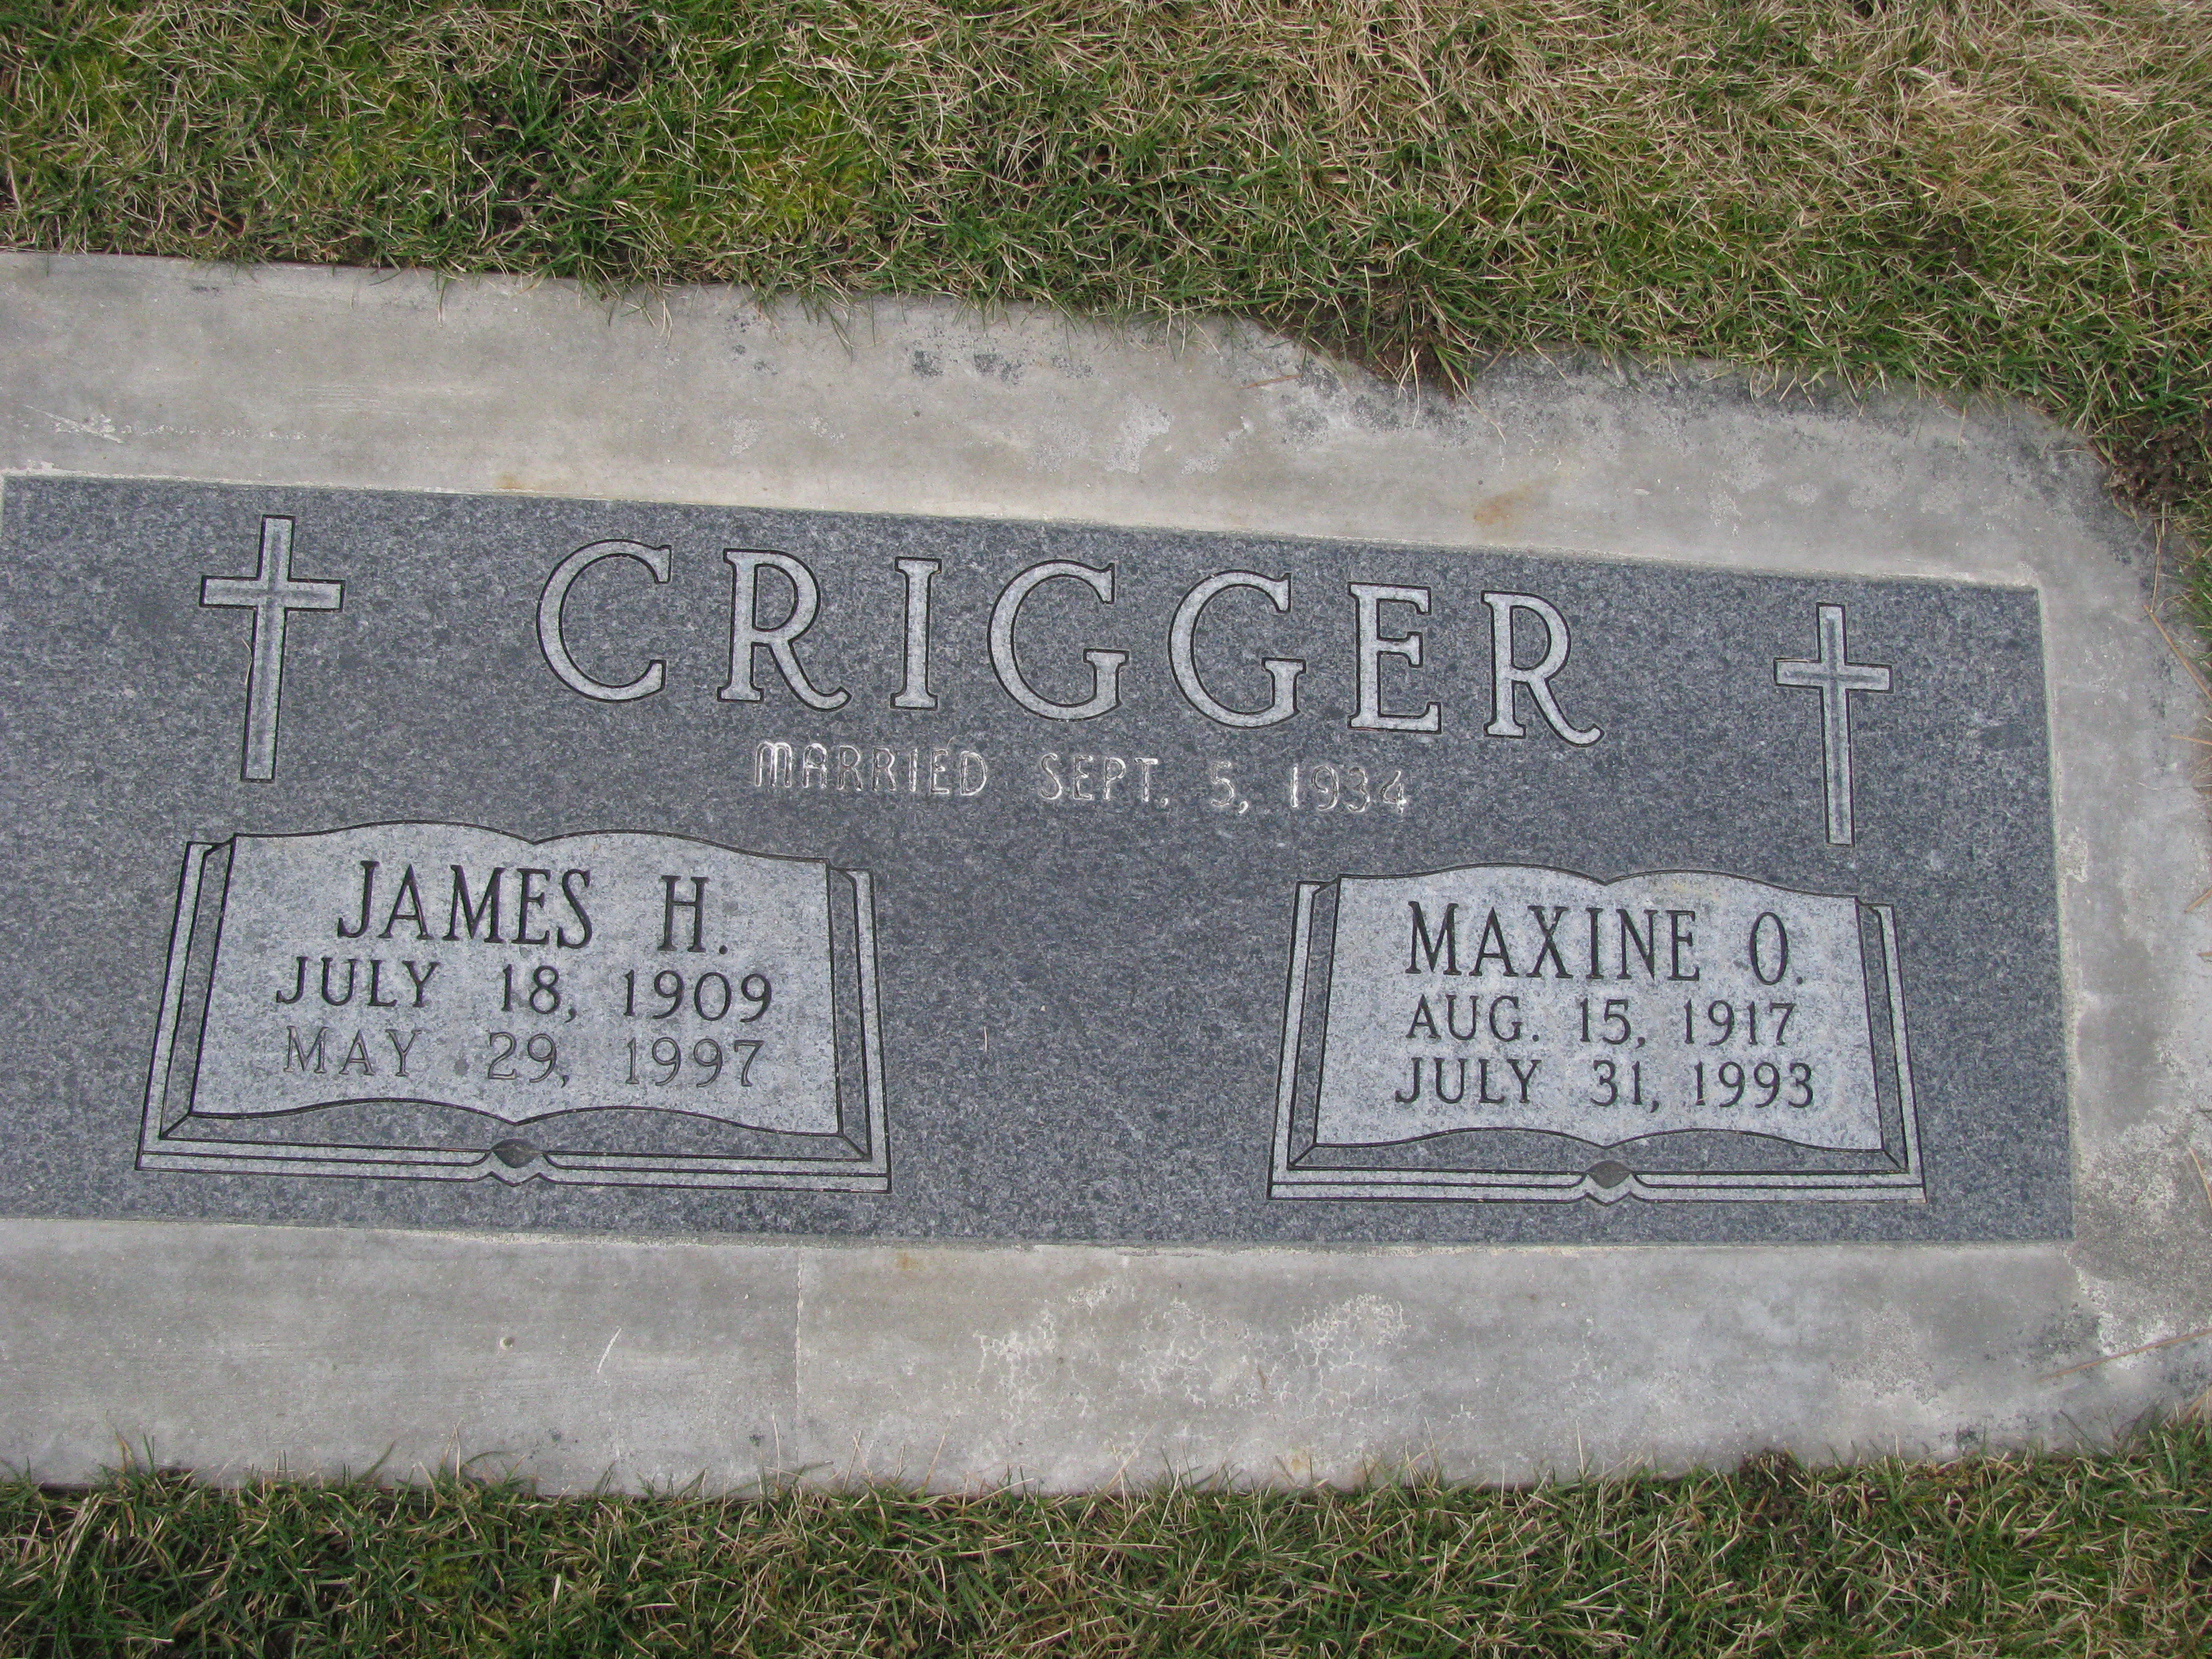 Jimmy Crigger